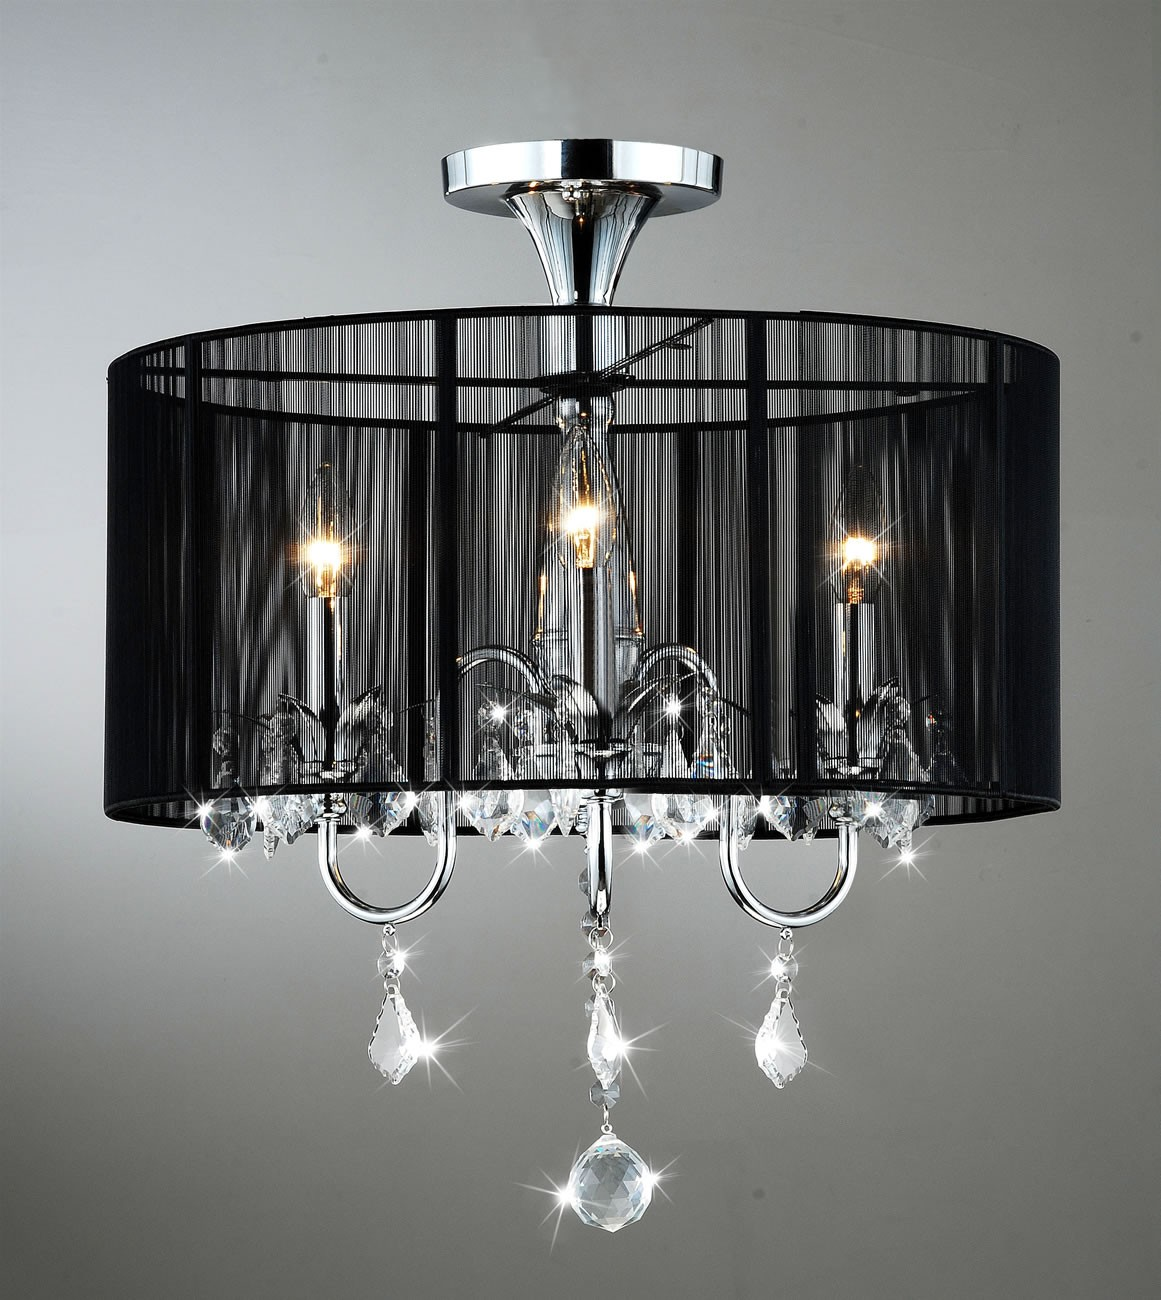 Aubree 3 lights black and chrome semi flush mount crystal chandelier aubree 3 lights black and chrome semi flush mount crystal chandelier 185w x aloadofball Images